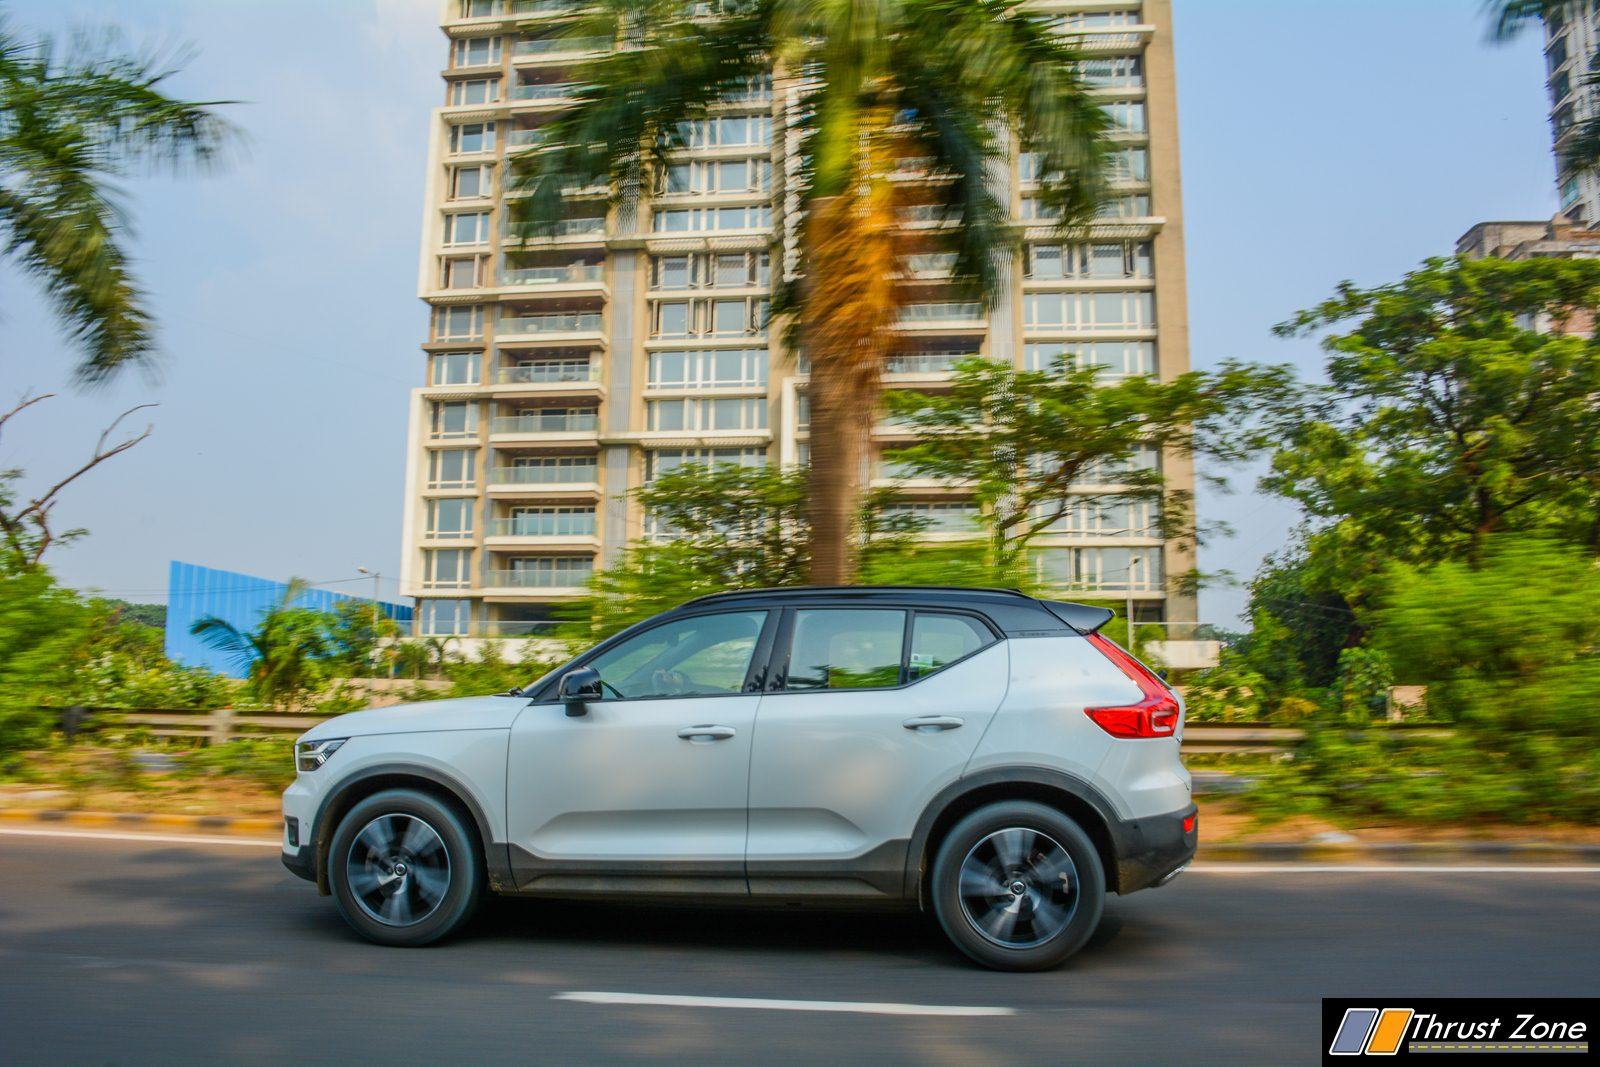 https://www.thrustzone.com/wp-content/uploads/2018/11/BMW-X1-vs-Volvo-XC40-Diesel-Comparison-Review-Shootout-23.jpg